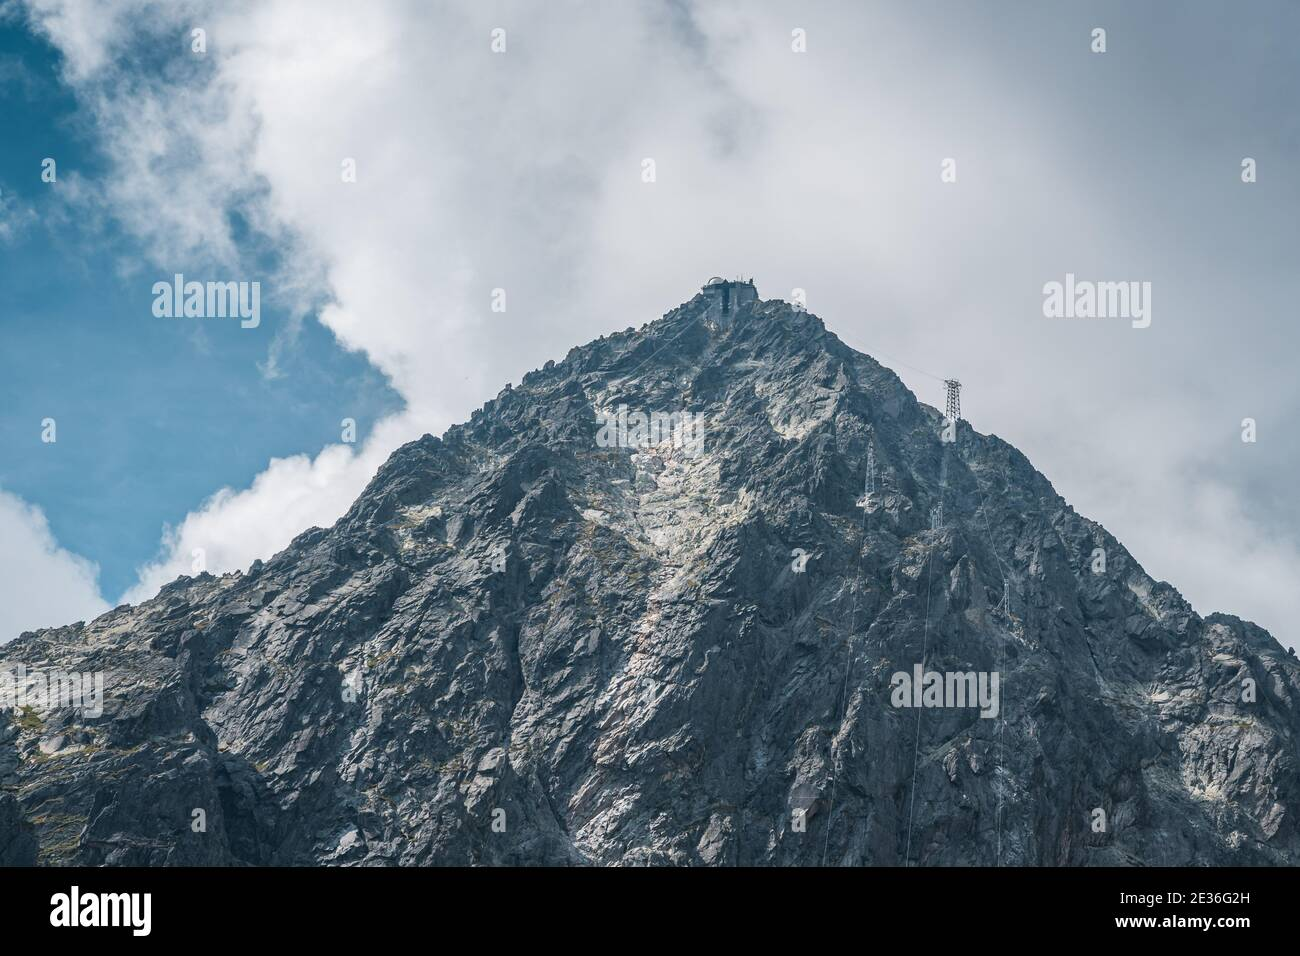 View of the Lomnicky stit peak, famous rocky summit in High Tatras, Slovakia. Cloudy windy day. Stock Photo